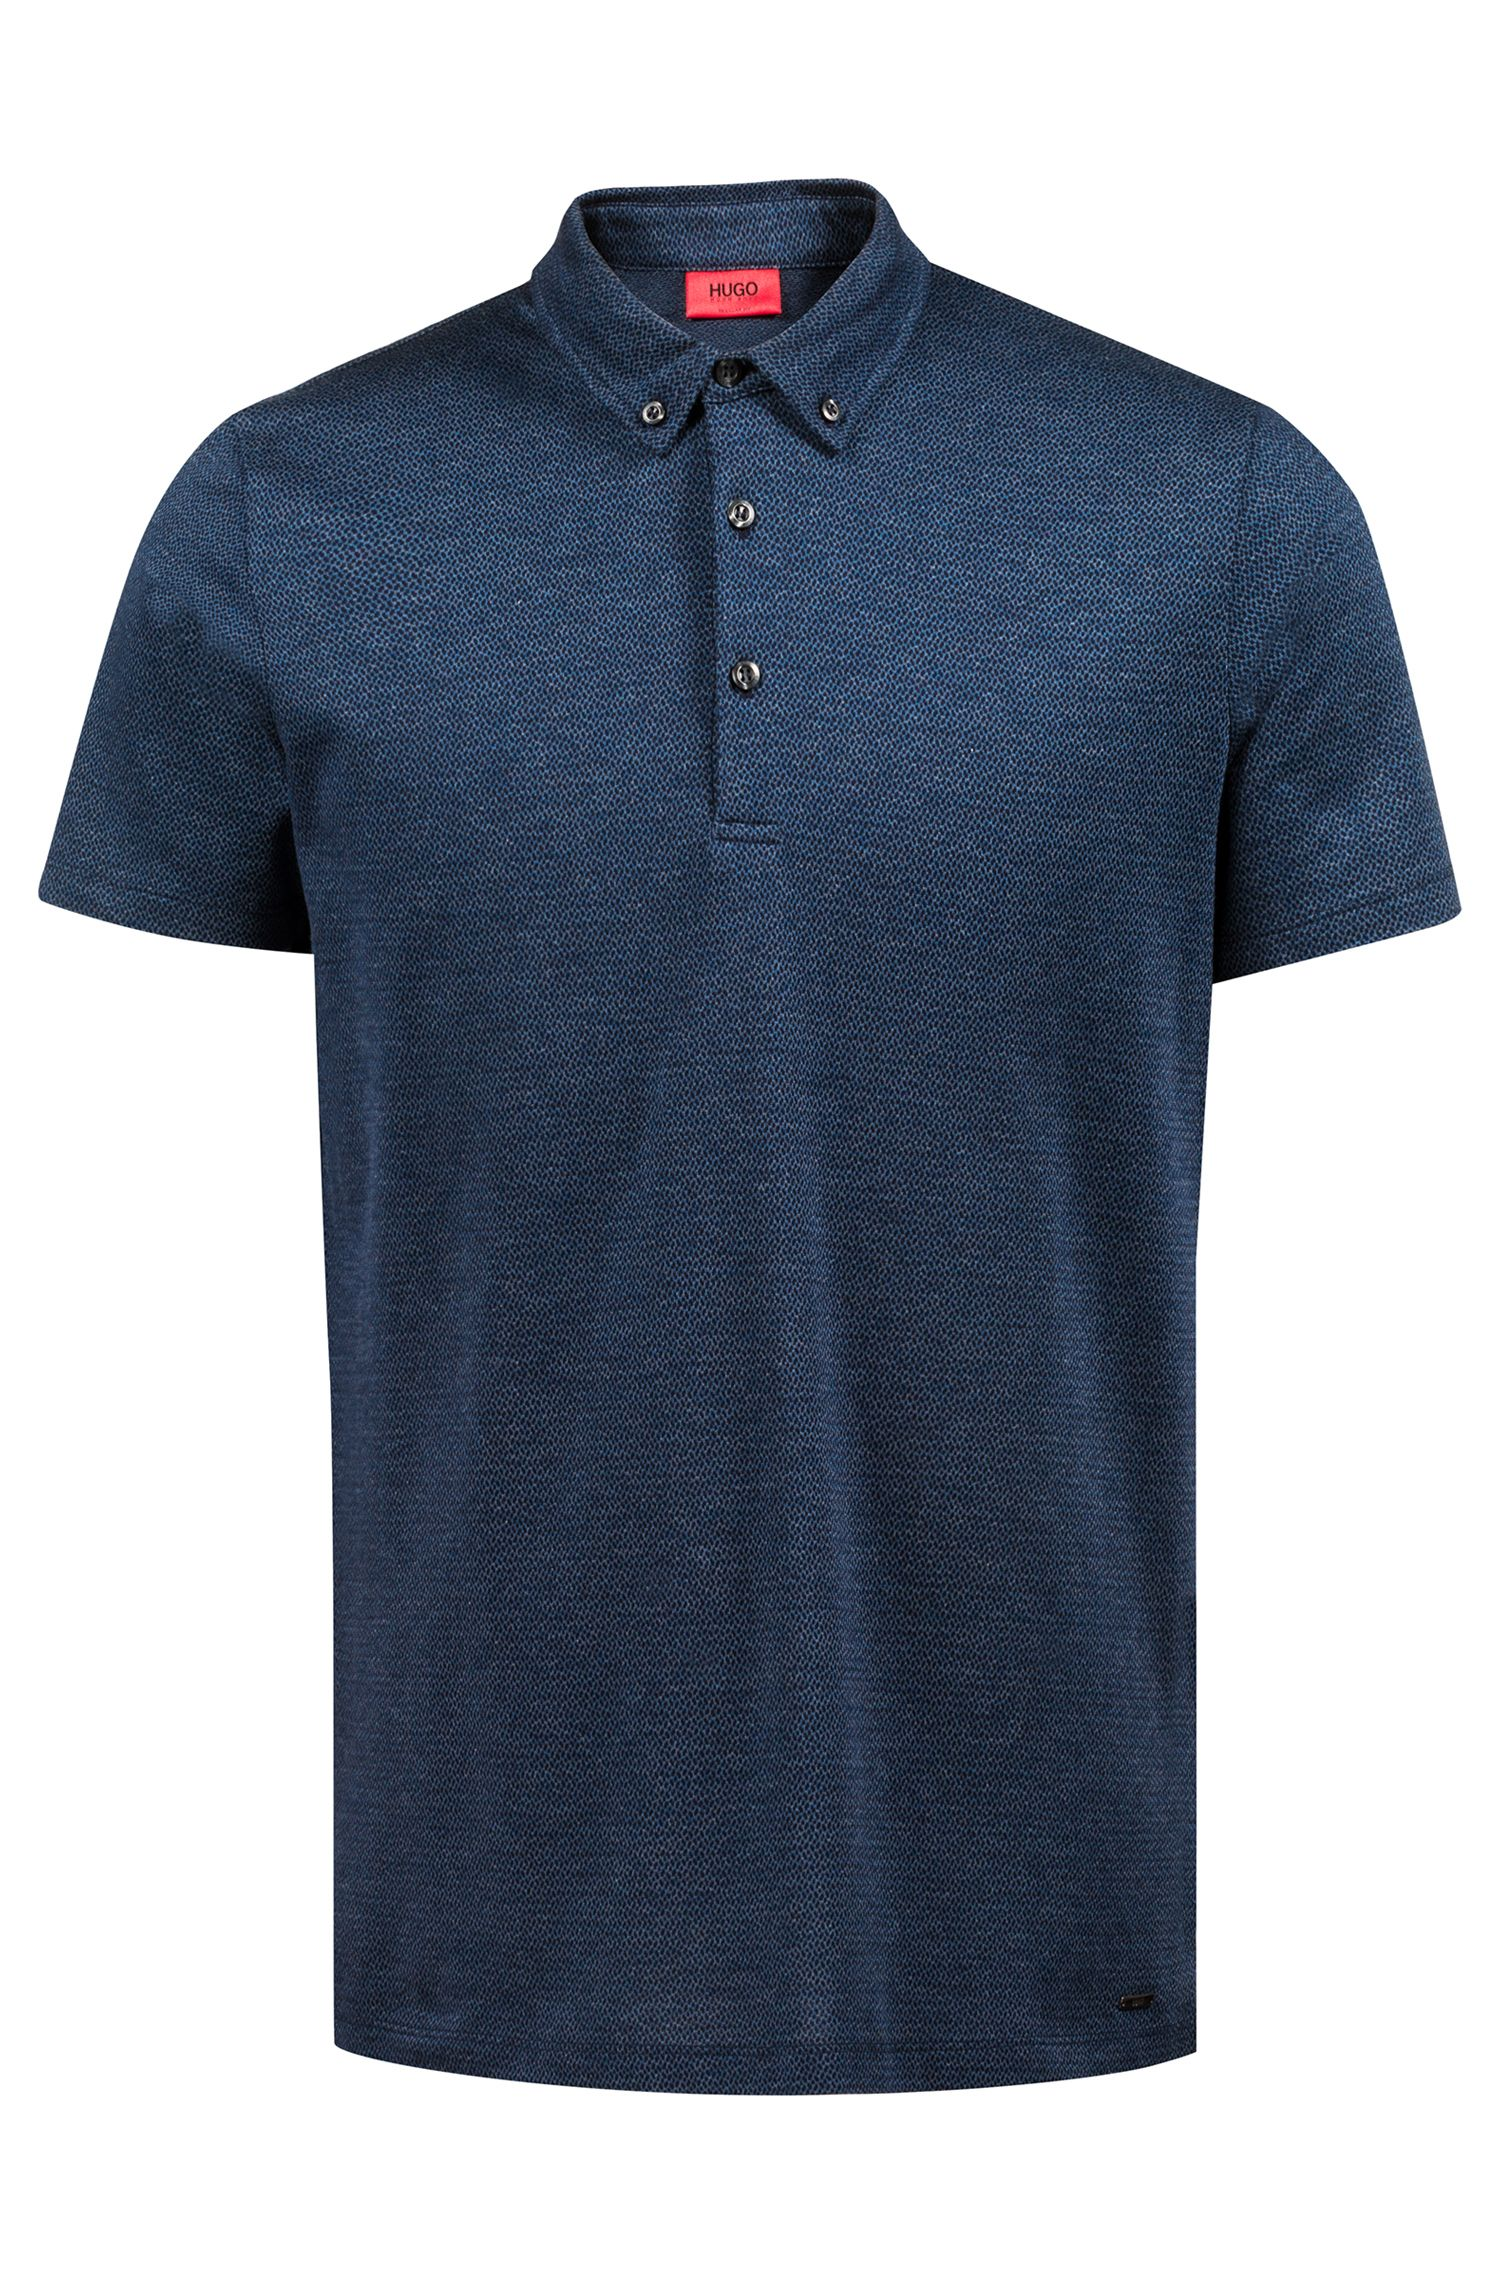 Regular-fit knitted polo shirt in lightweight cotton jacquard, Dark Blue